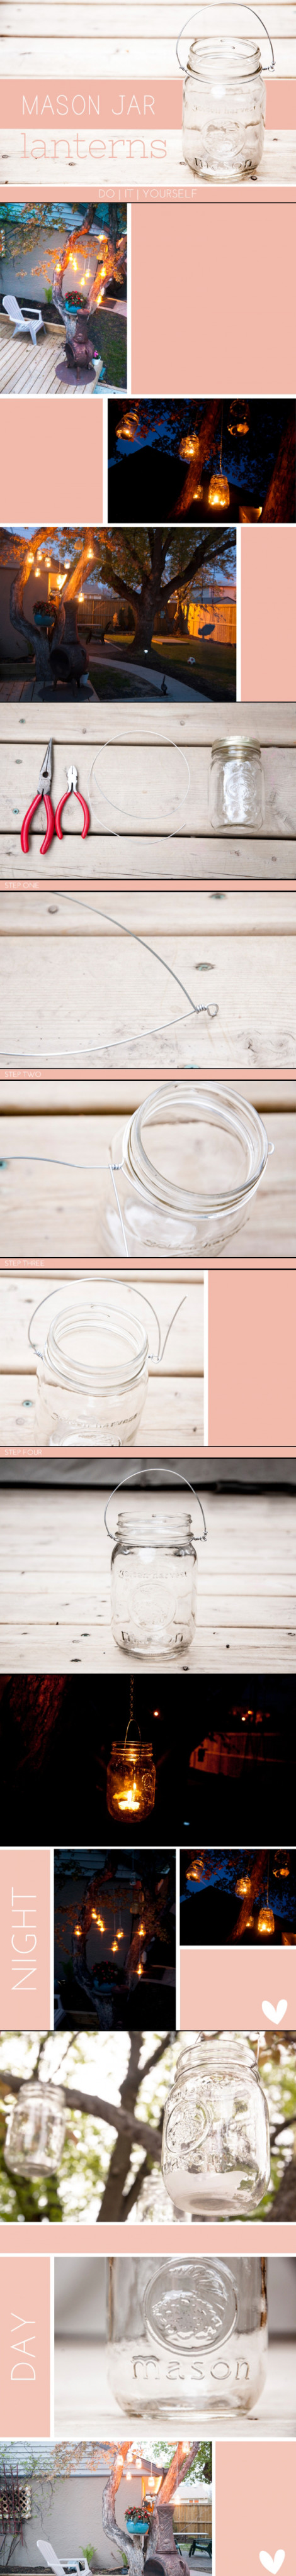 Clever and easy DIY Mason Jar Hanging Lanterns – Founded at Petite Raisin